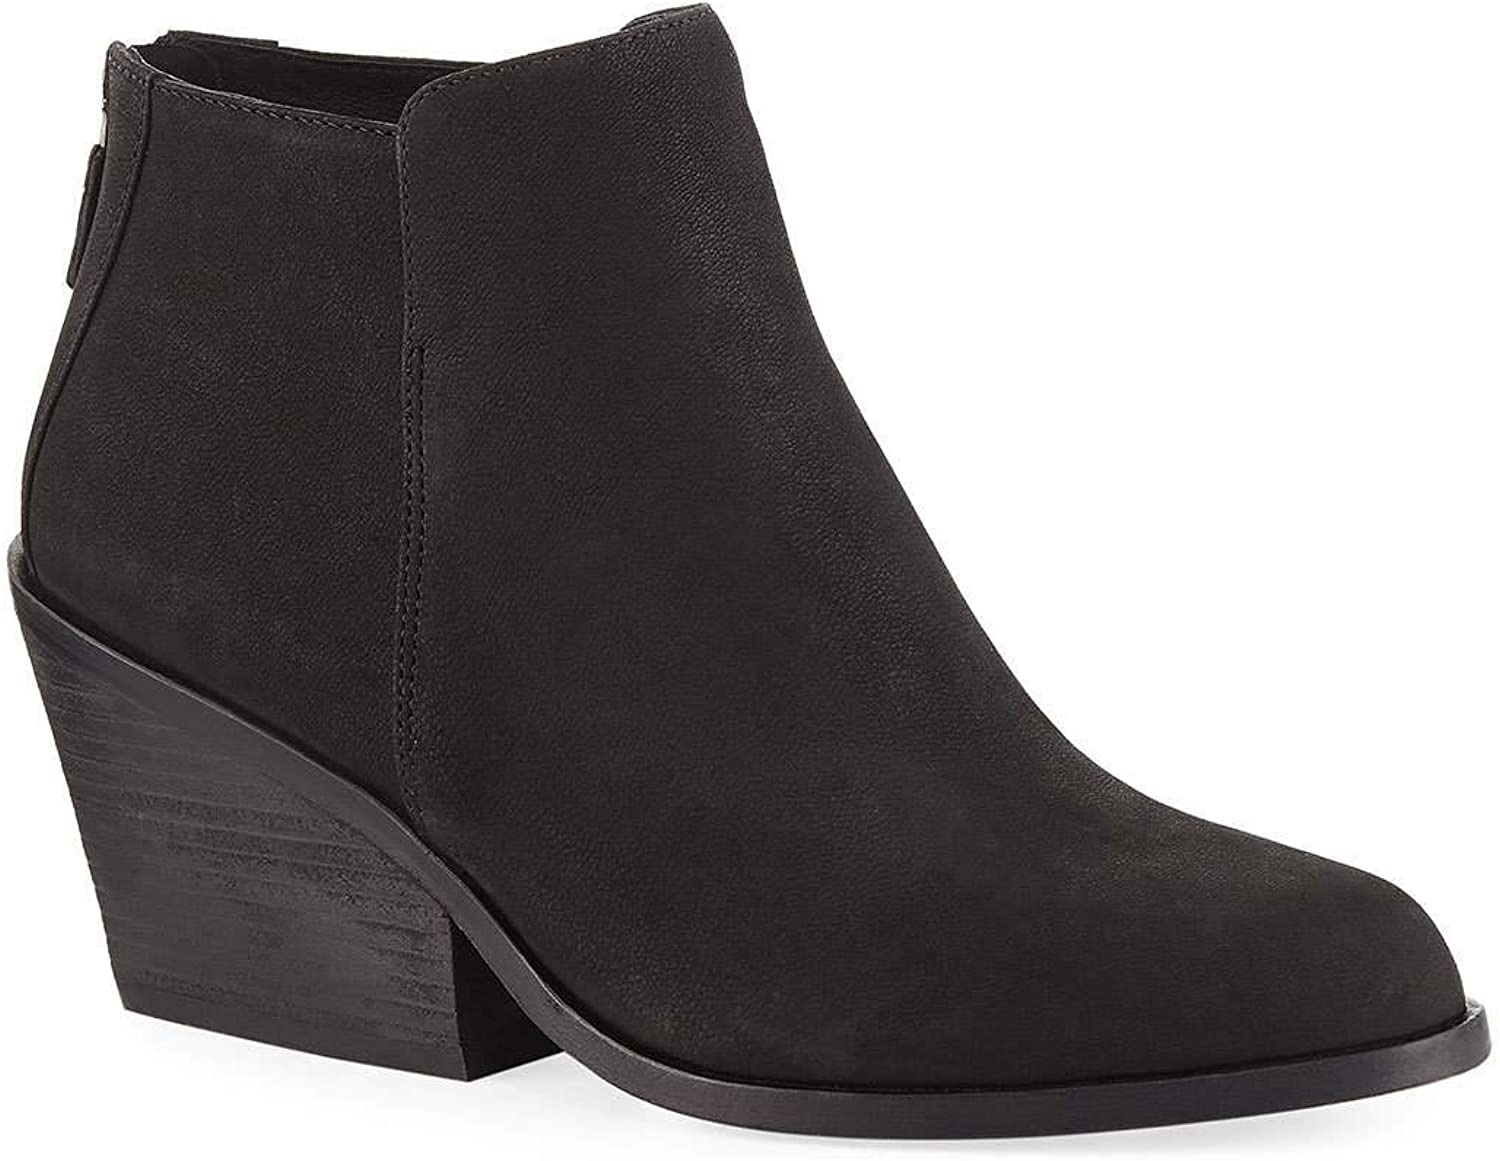 EileenFisher Womens Rove Nubuck Round Toe Ankle Fashion Boots